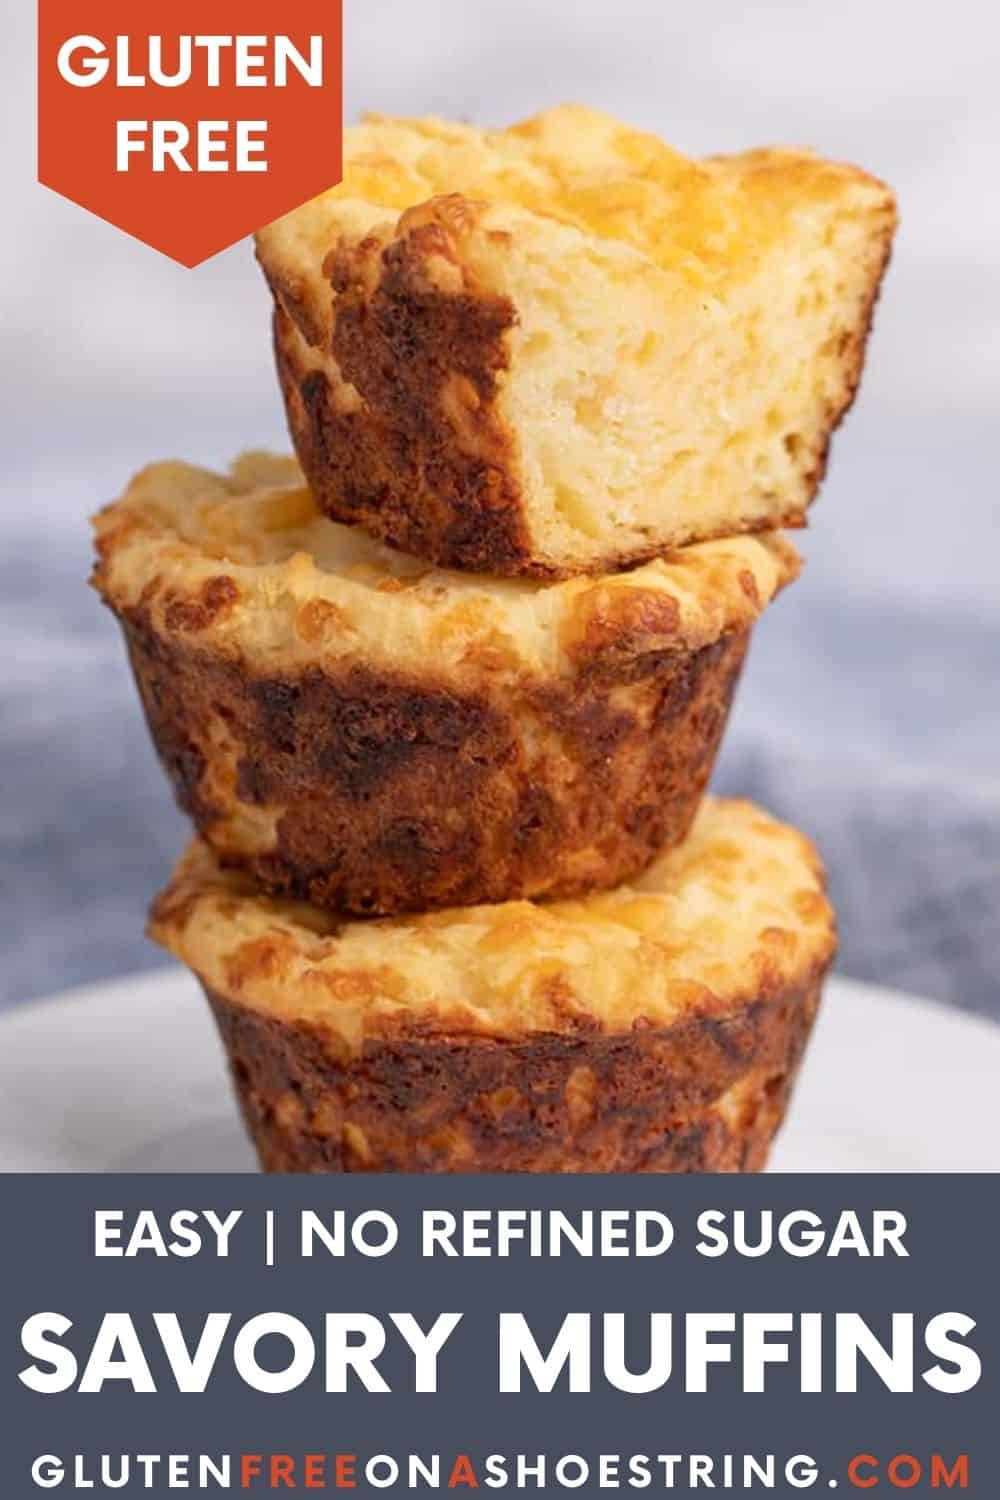 Words gluten free easy no refined sugar savory muffins over image of stack of 3 muffins on small white plate, top muffin sliced in half